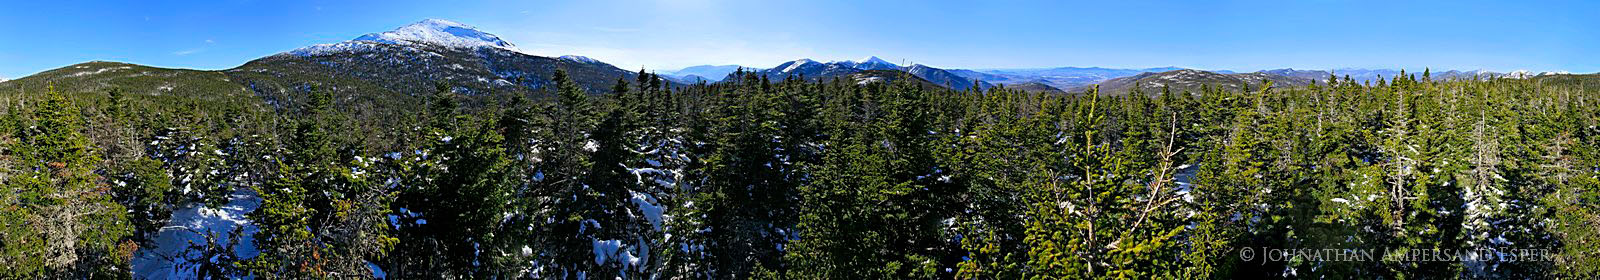 360�,panorama,Mt Marcy,trail,summit,Adirondack,High Peaks,winter,treetop, photo